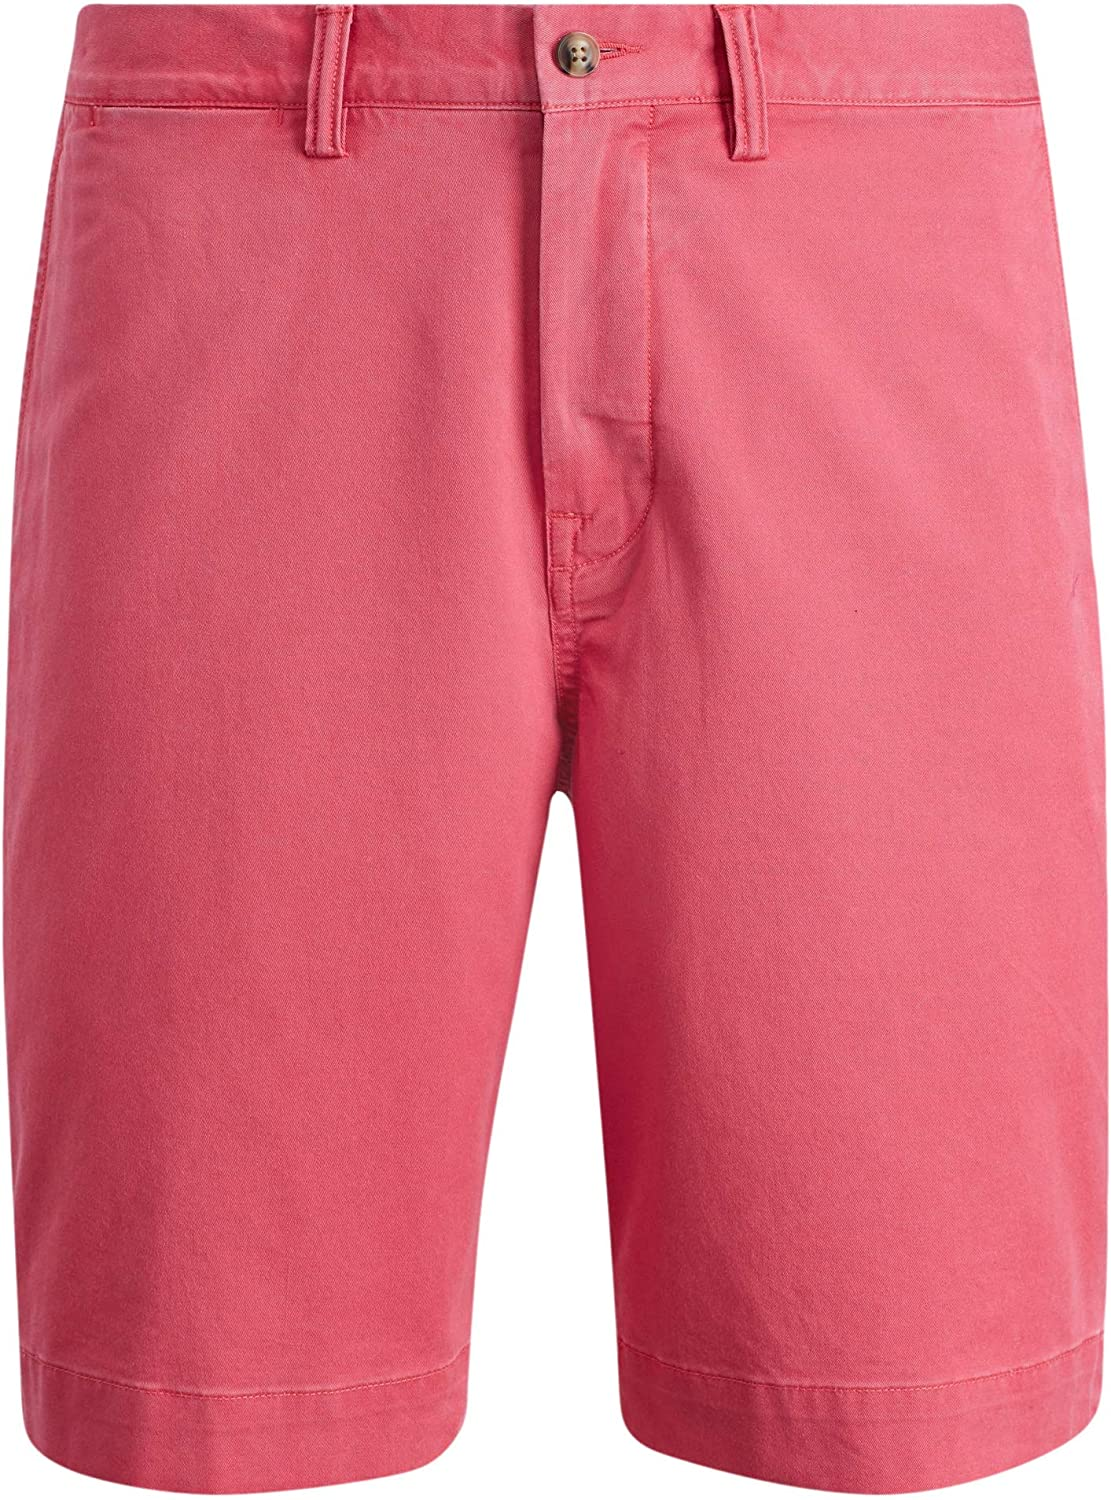 "Ralph Lauren Polo Men's Stretch Classic-Fit 9.5"" Flat Front Shorts"